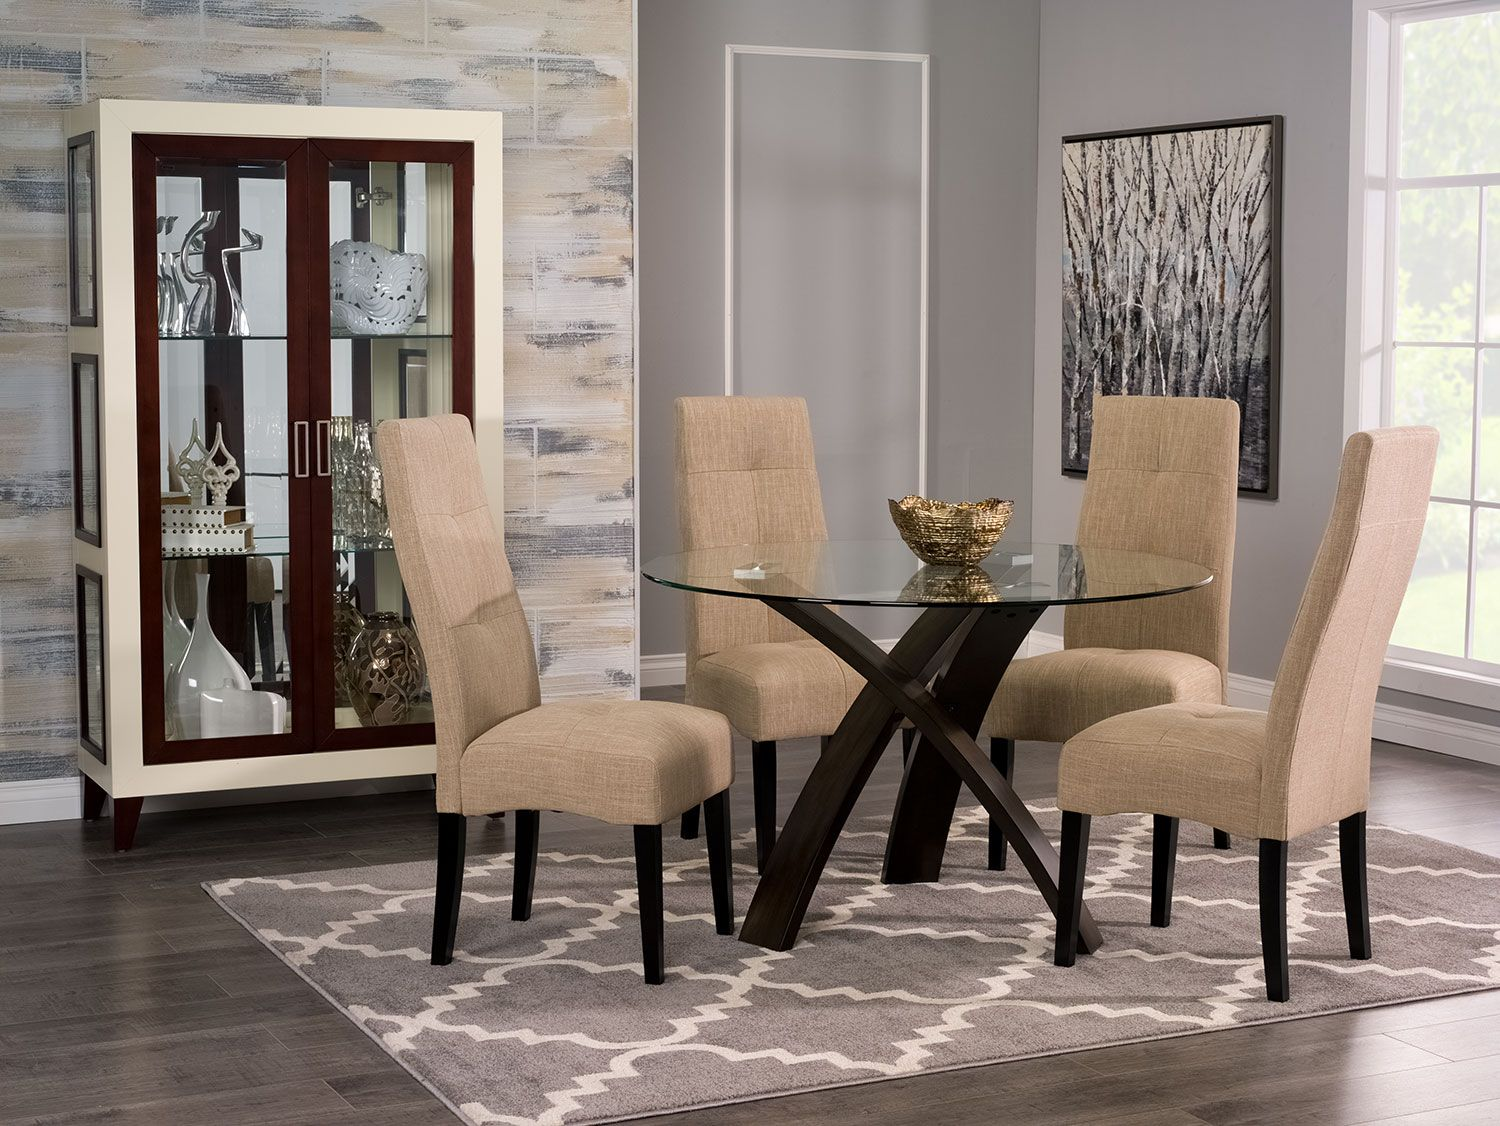 Dining Room Furniture  Skye 5Piece Dining Package With Sadie Enchanting Dining Room Accent Pieces Design Ideas